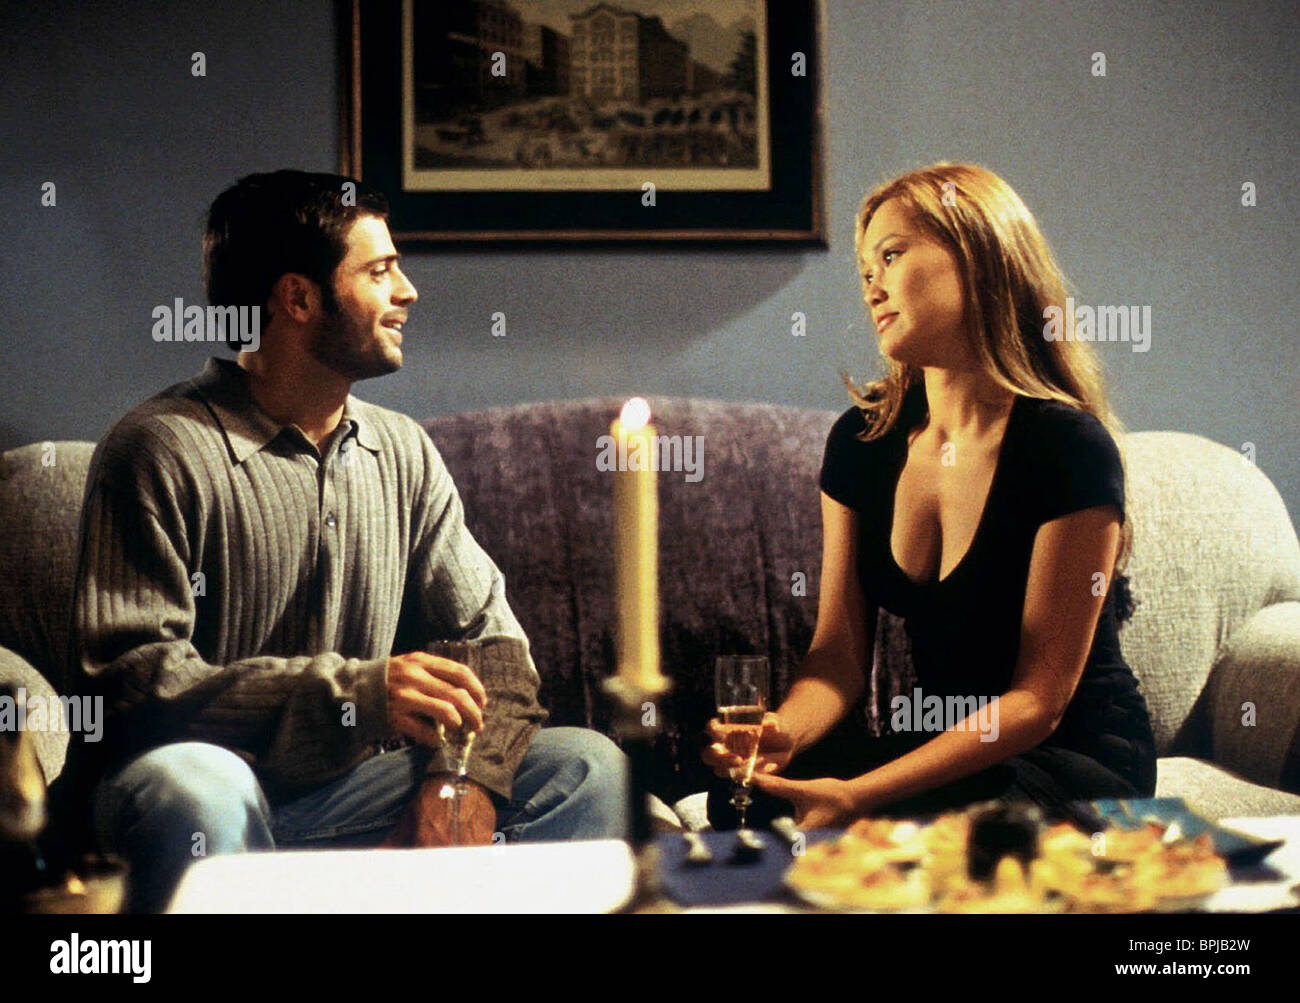 meet prince charming 1999 watch online free